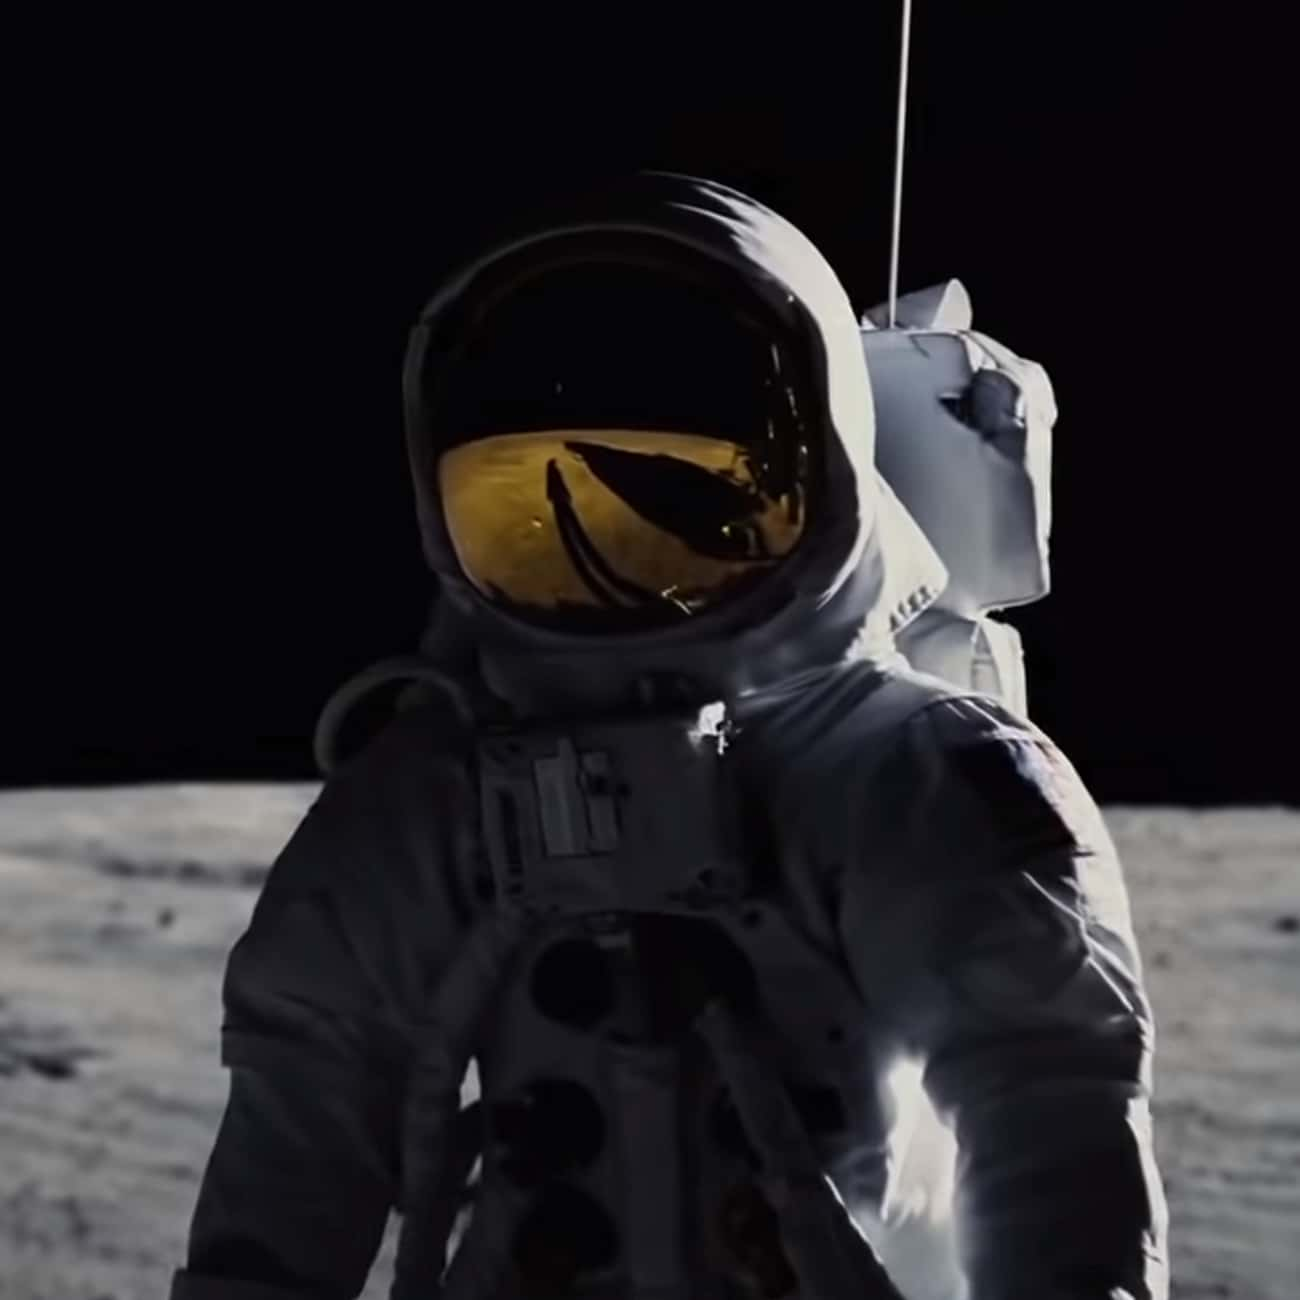 One Small Step is listed (or ranked) 4 on the list The Best First Man Quotes